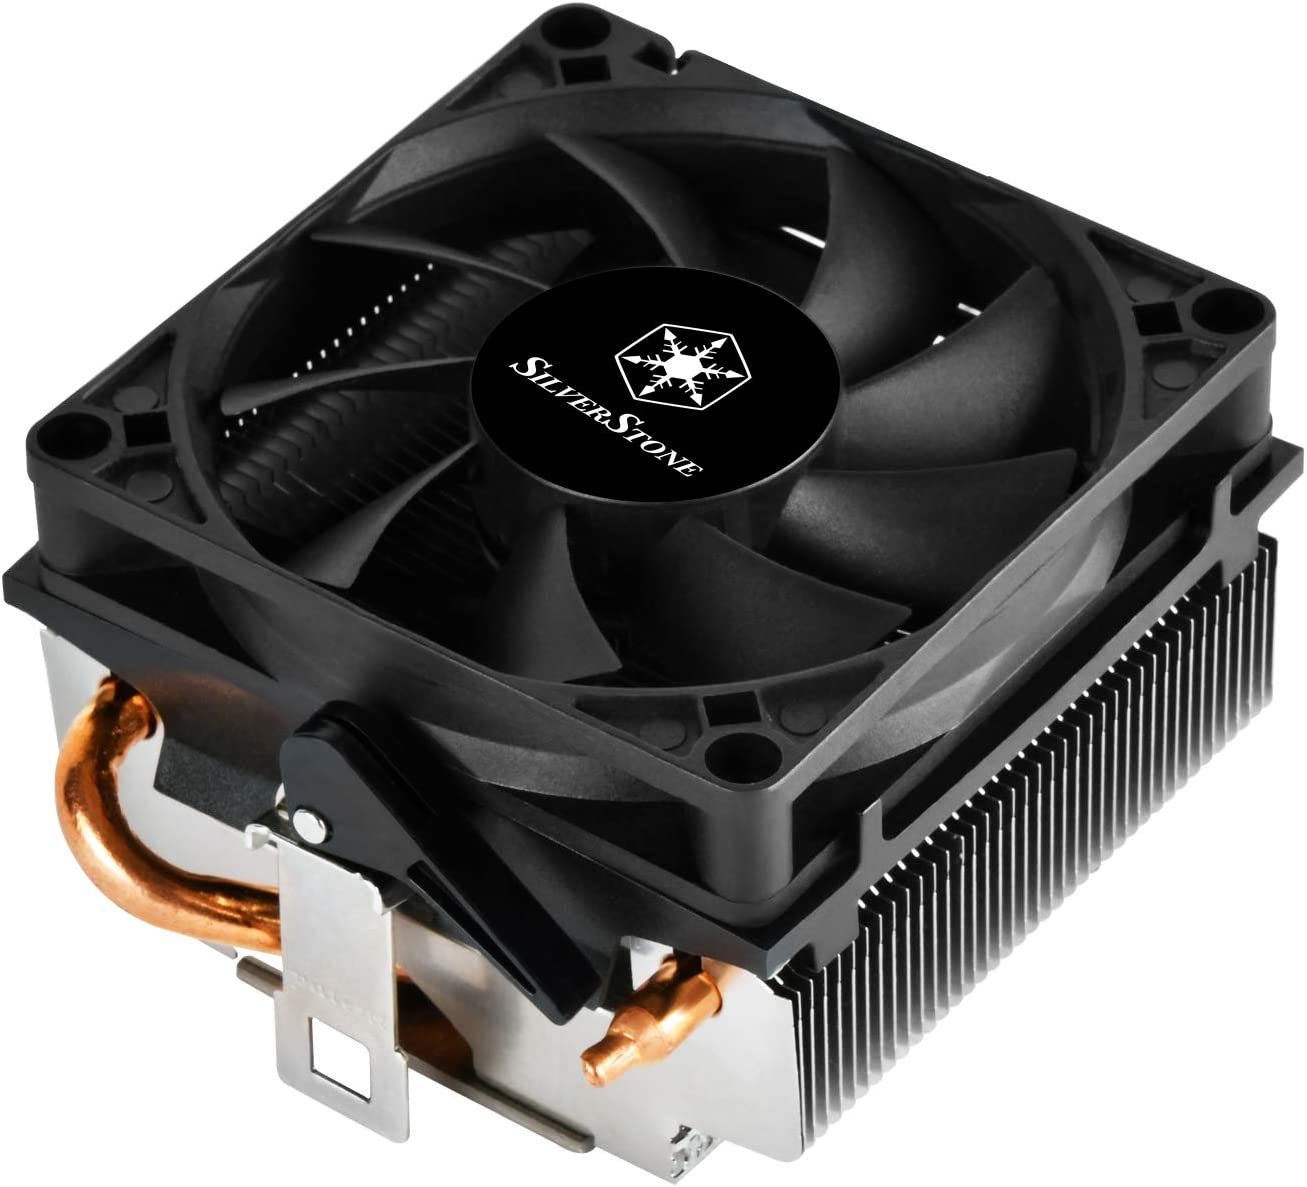 SilverStone Technology Low Profile 95W or More AMD Socket AM2/AM3/AM4/FM1/FM2 CPU Cooler Only 54mm Tall Cooling (RL-KR01)